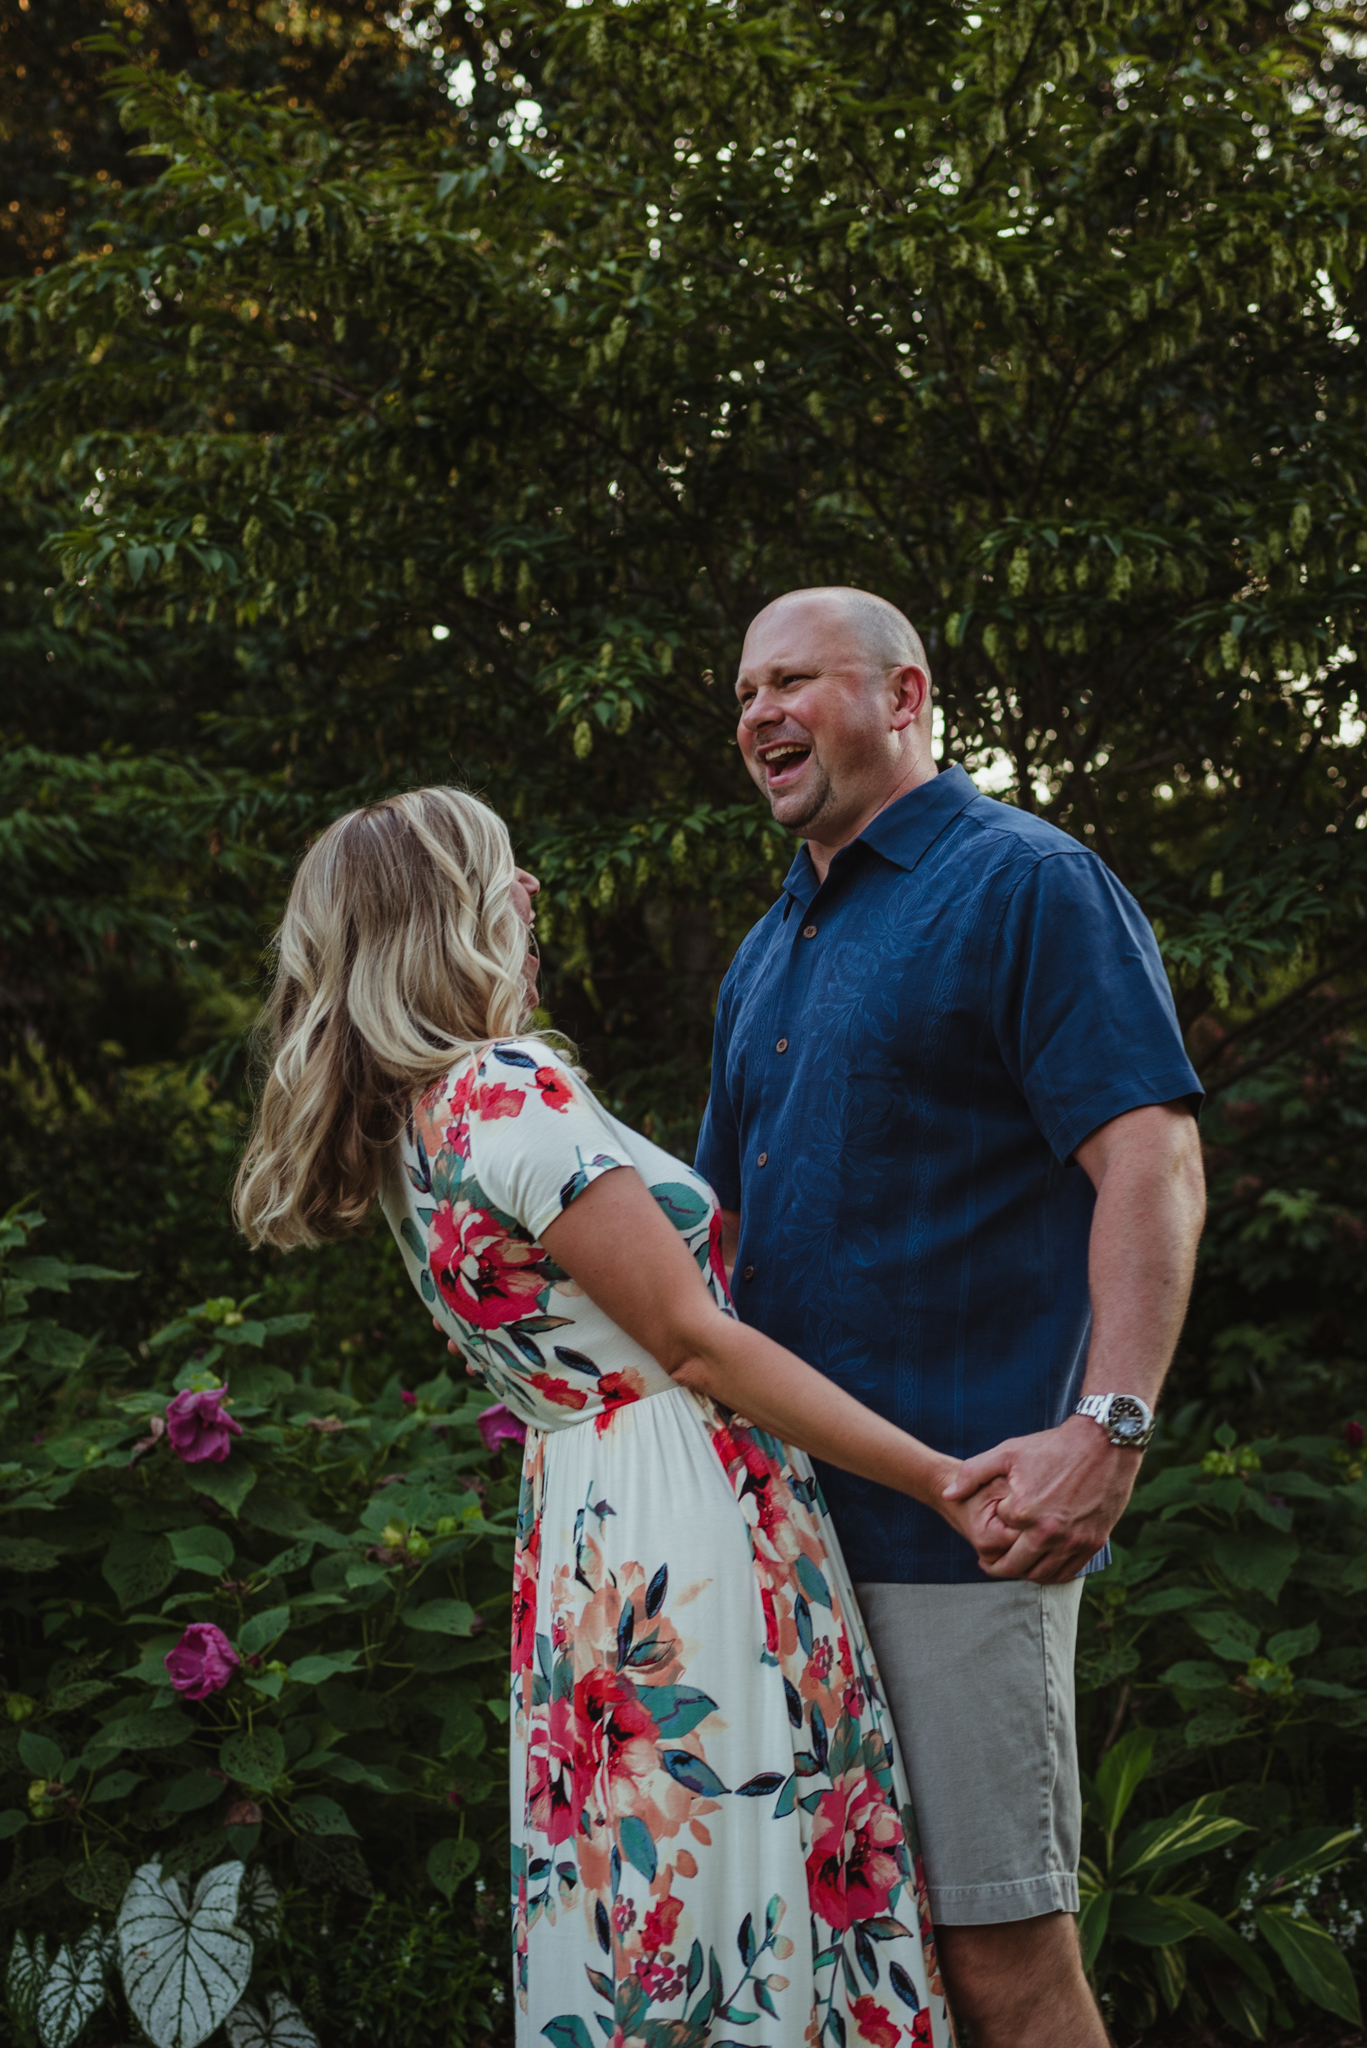 The bride and groom hold hands and laugh during their engagement session at Fred Fletcher Park in Raleigh, North Carolina with Rose Trail Images.